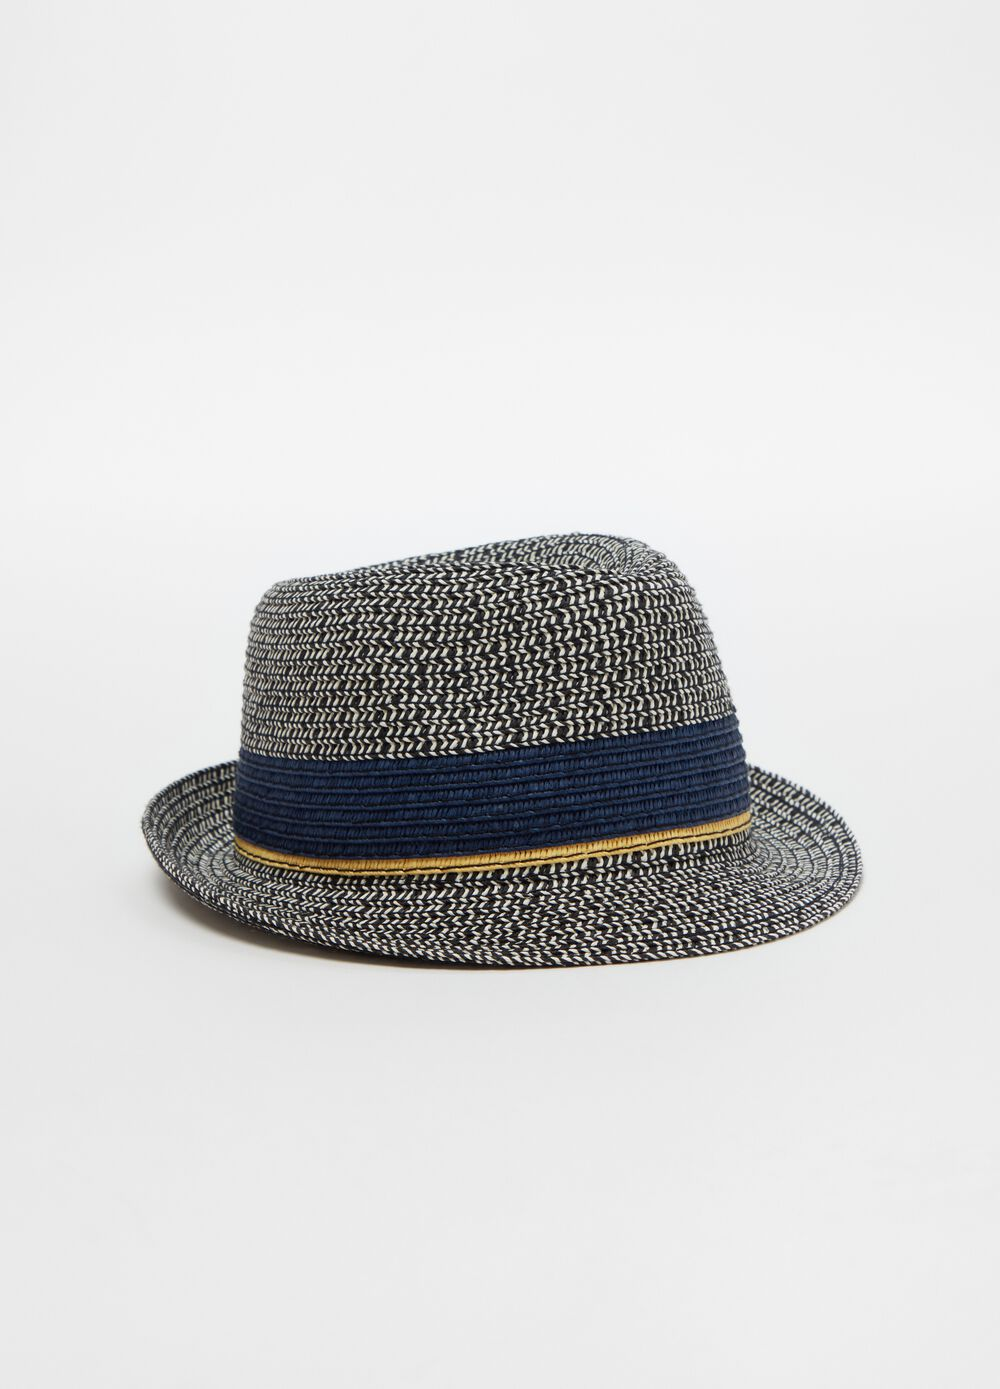 Straw hat with insert